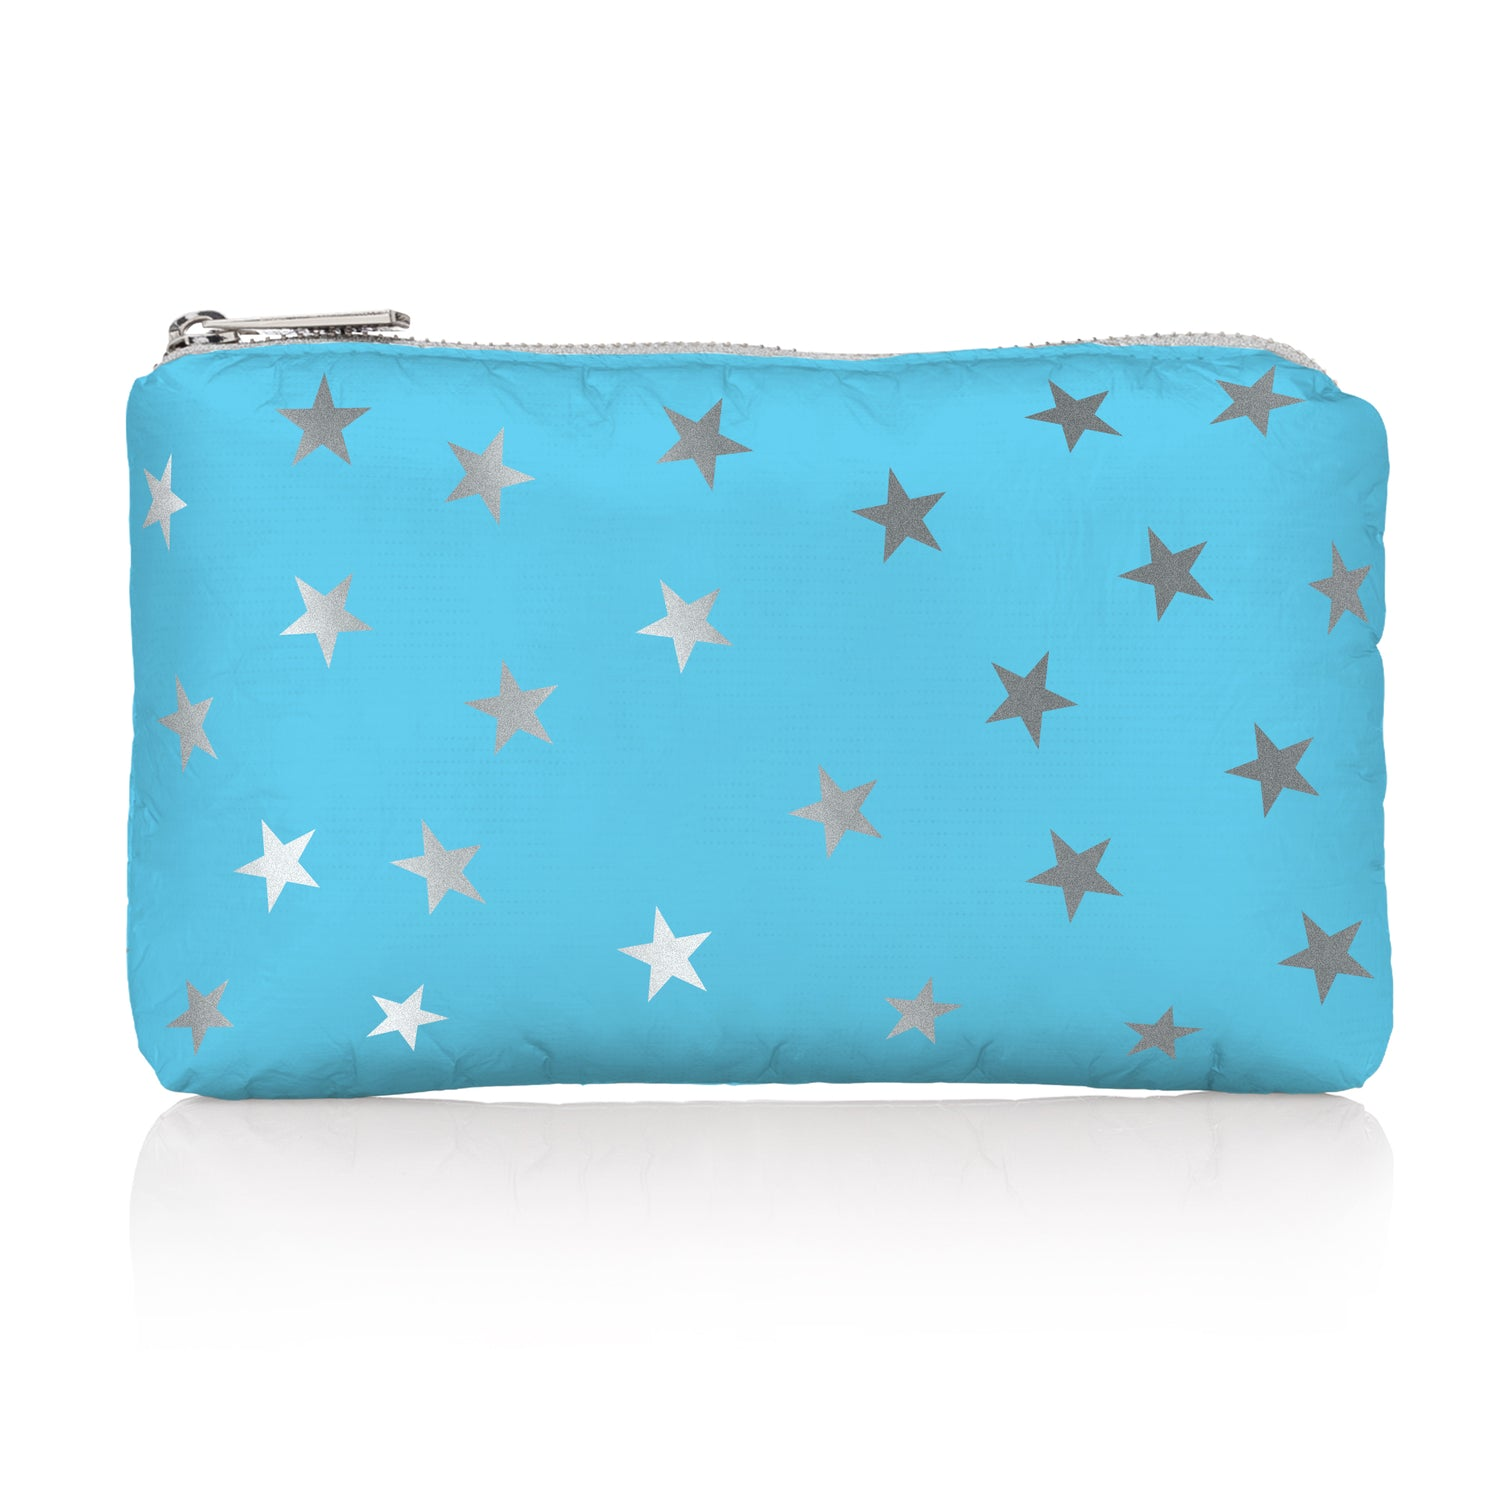 Mini Pack - Sky Blue with Myriad Silver Stars